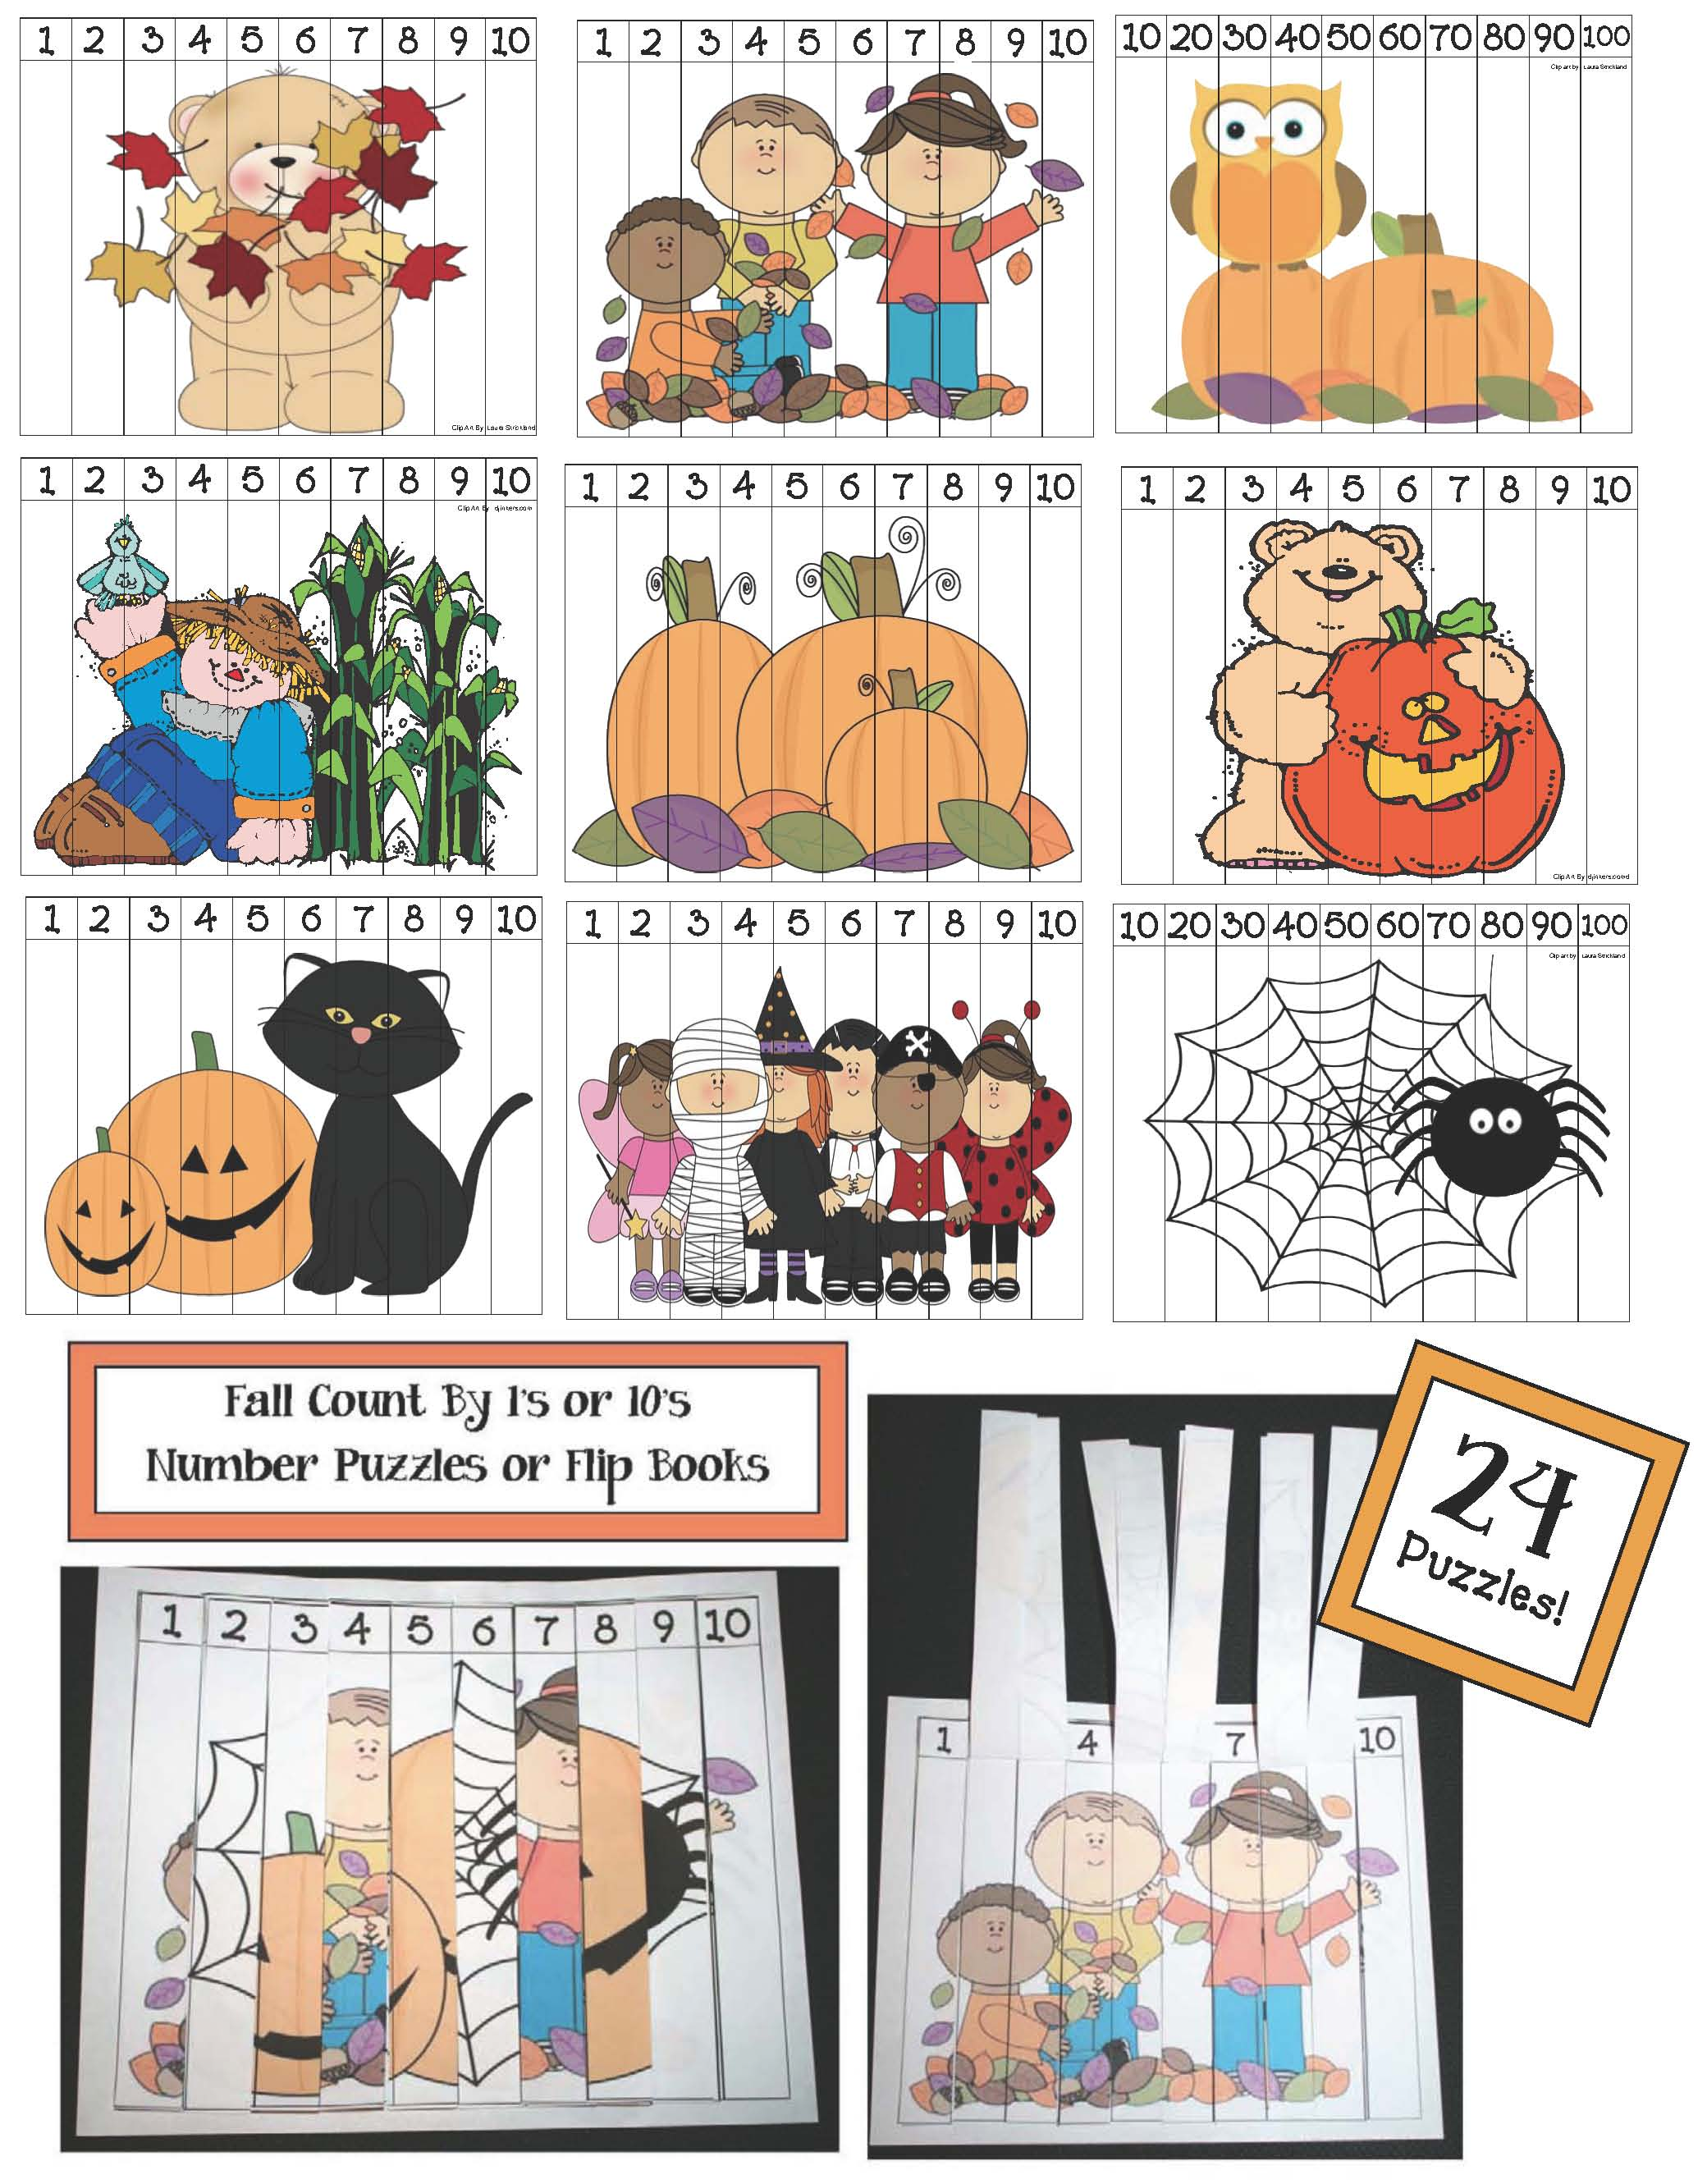 fall themed number puzzles, skip counting by 10's, shape activities, shape games, number puzzles, spider puzzle, scarecrow puzzle, pumpkin puzzle, leaf puzzle, fall shape games, fall shape activities, number word activities, number word games